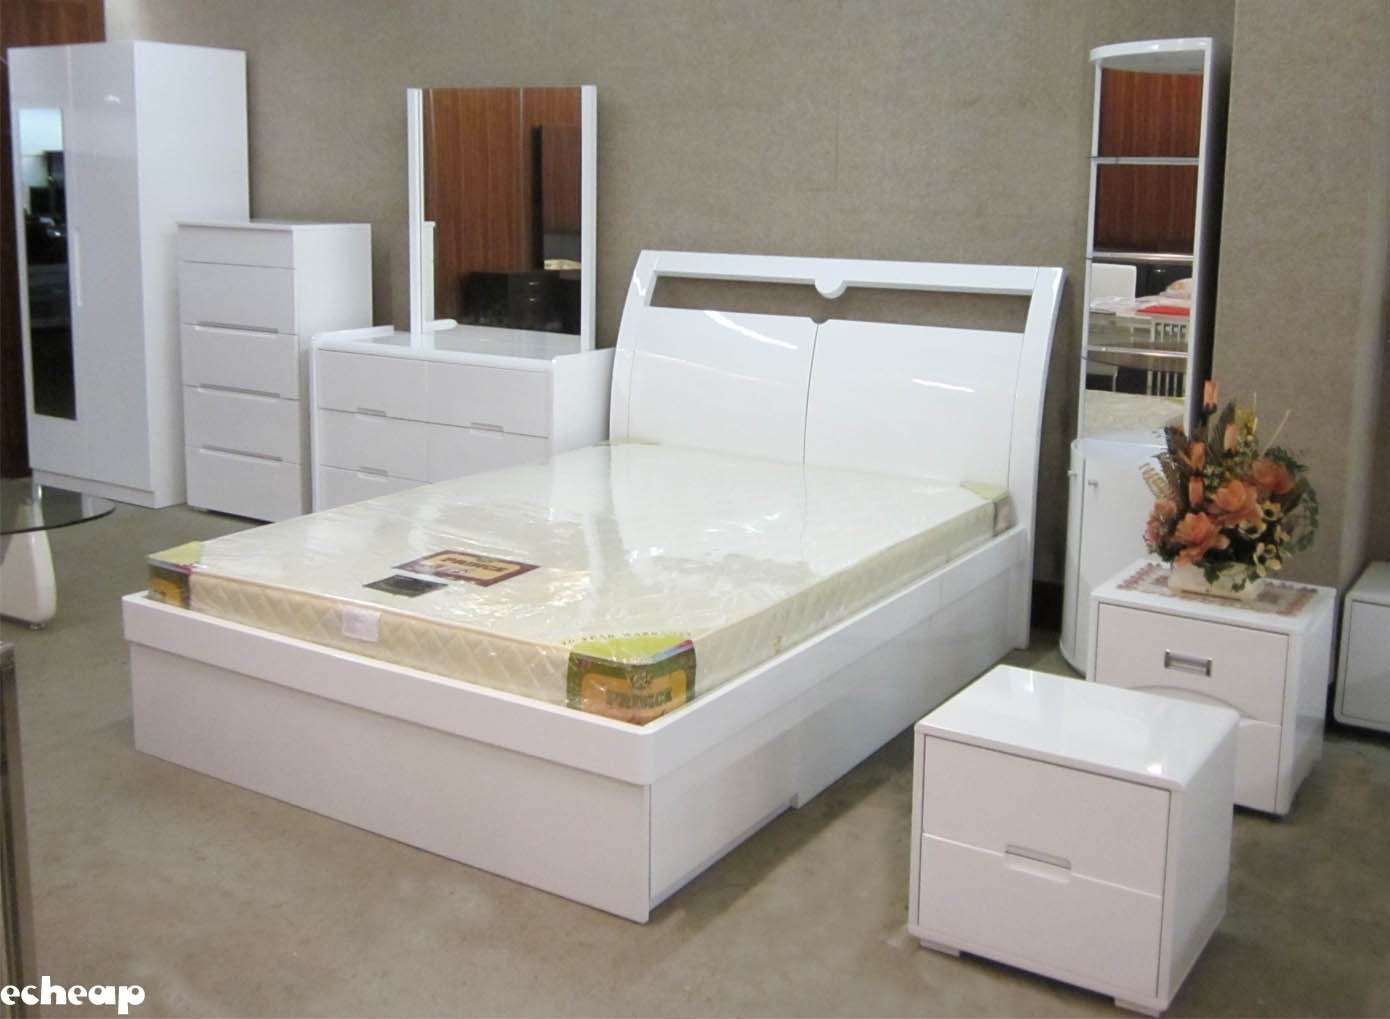 Bedroom Storage Solutions Surprise Your Guests